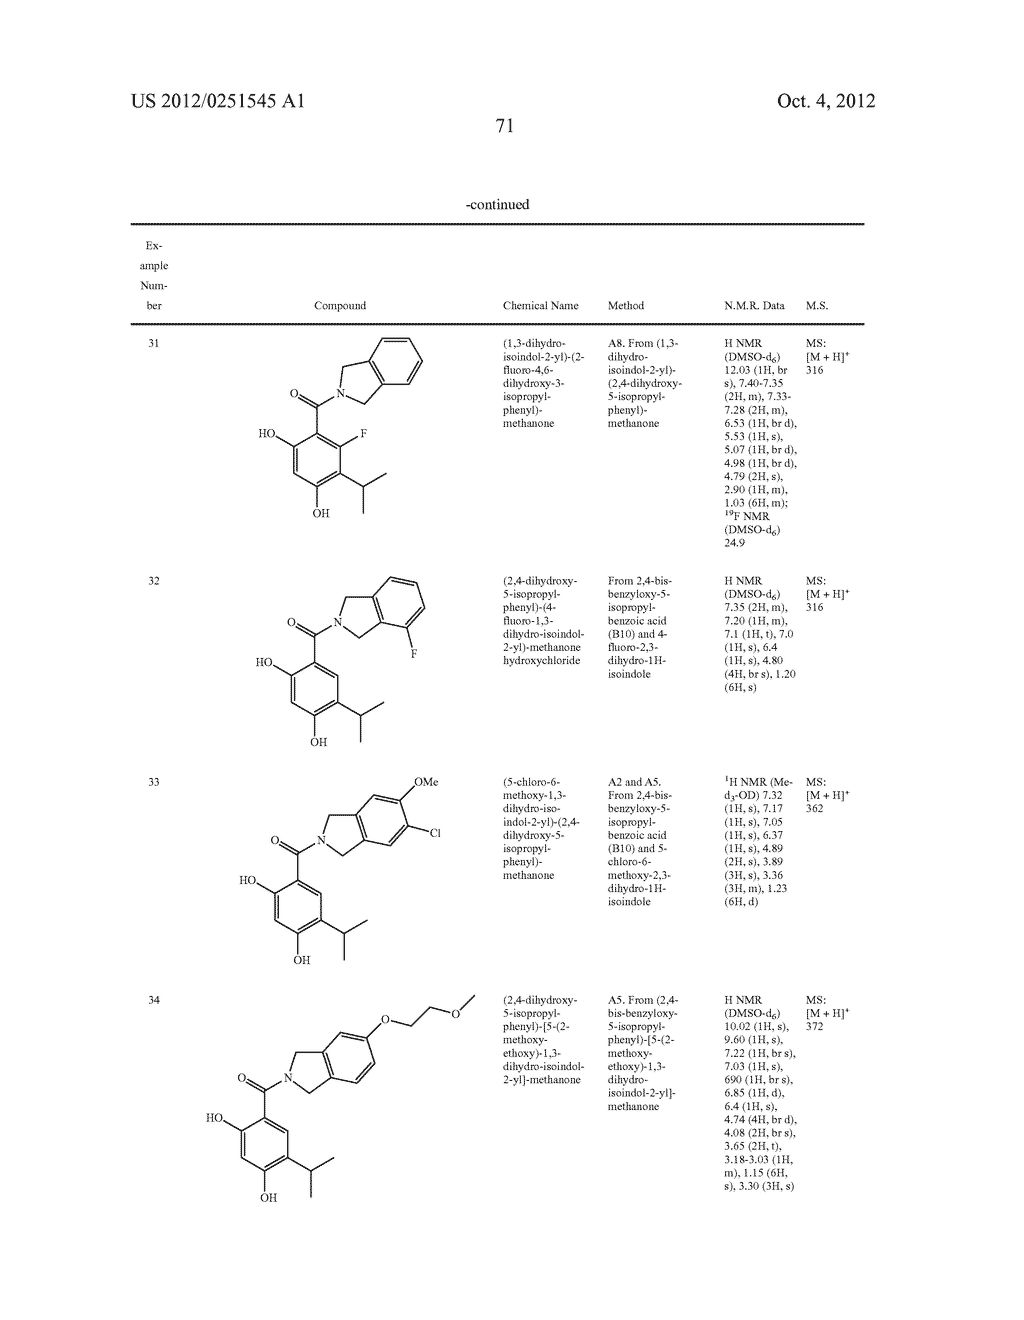 Therapeutic Combinations Of Hydroxybenzamide Derivatives As Inhibitors Of     HSP90 - diagram, schematic, and image 72